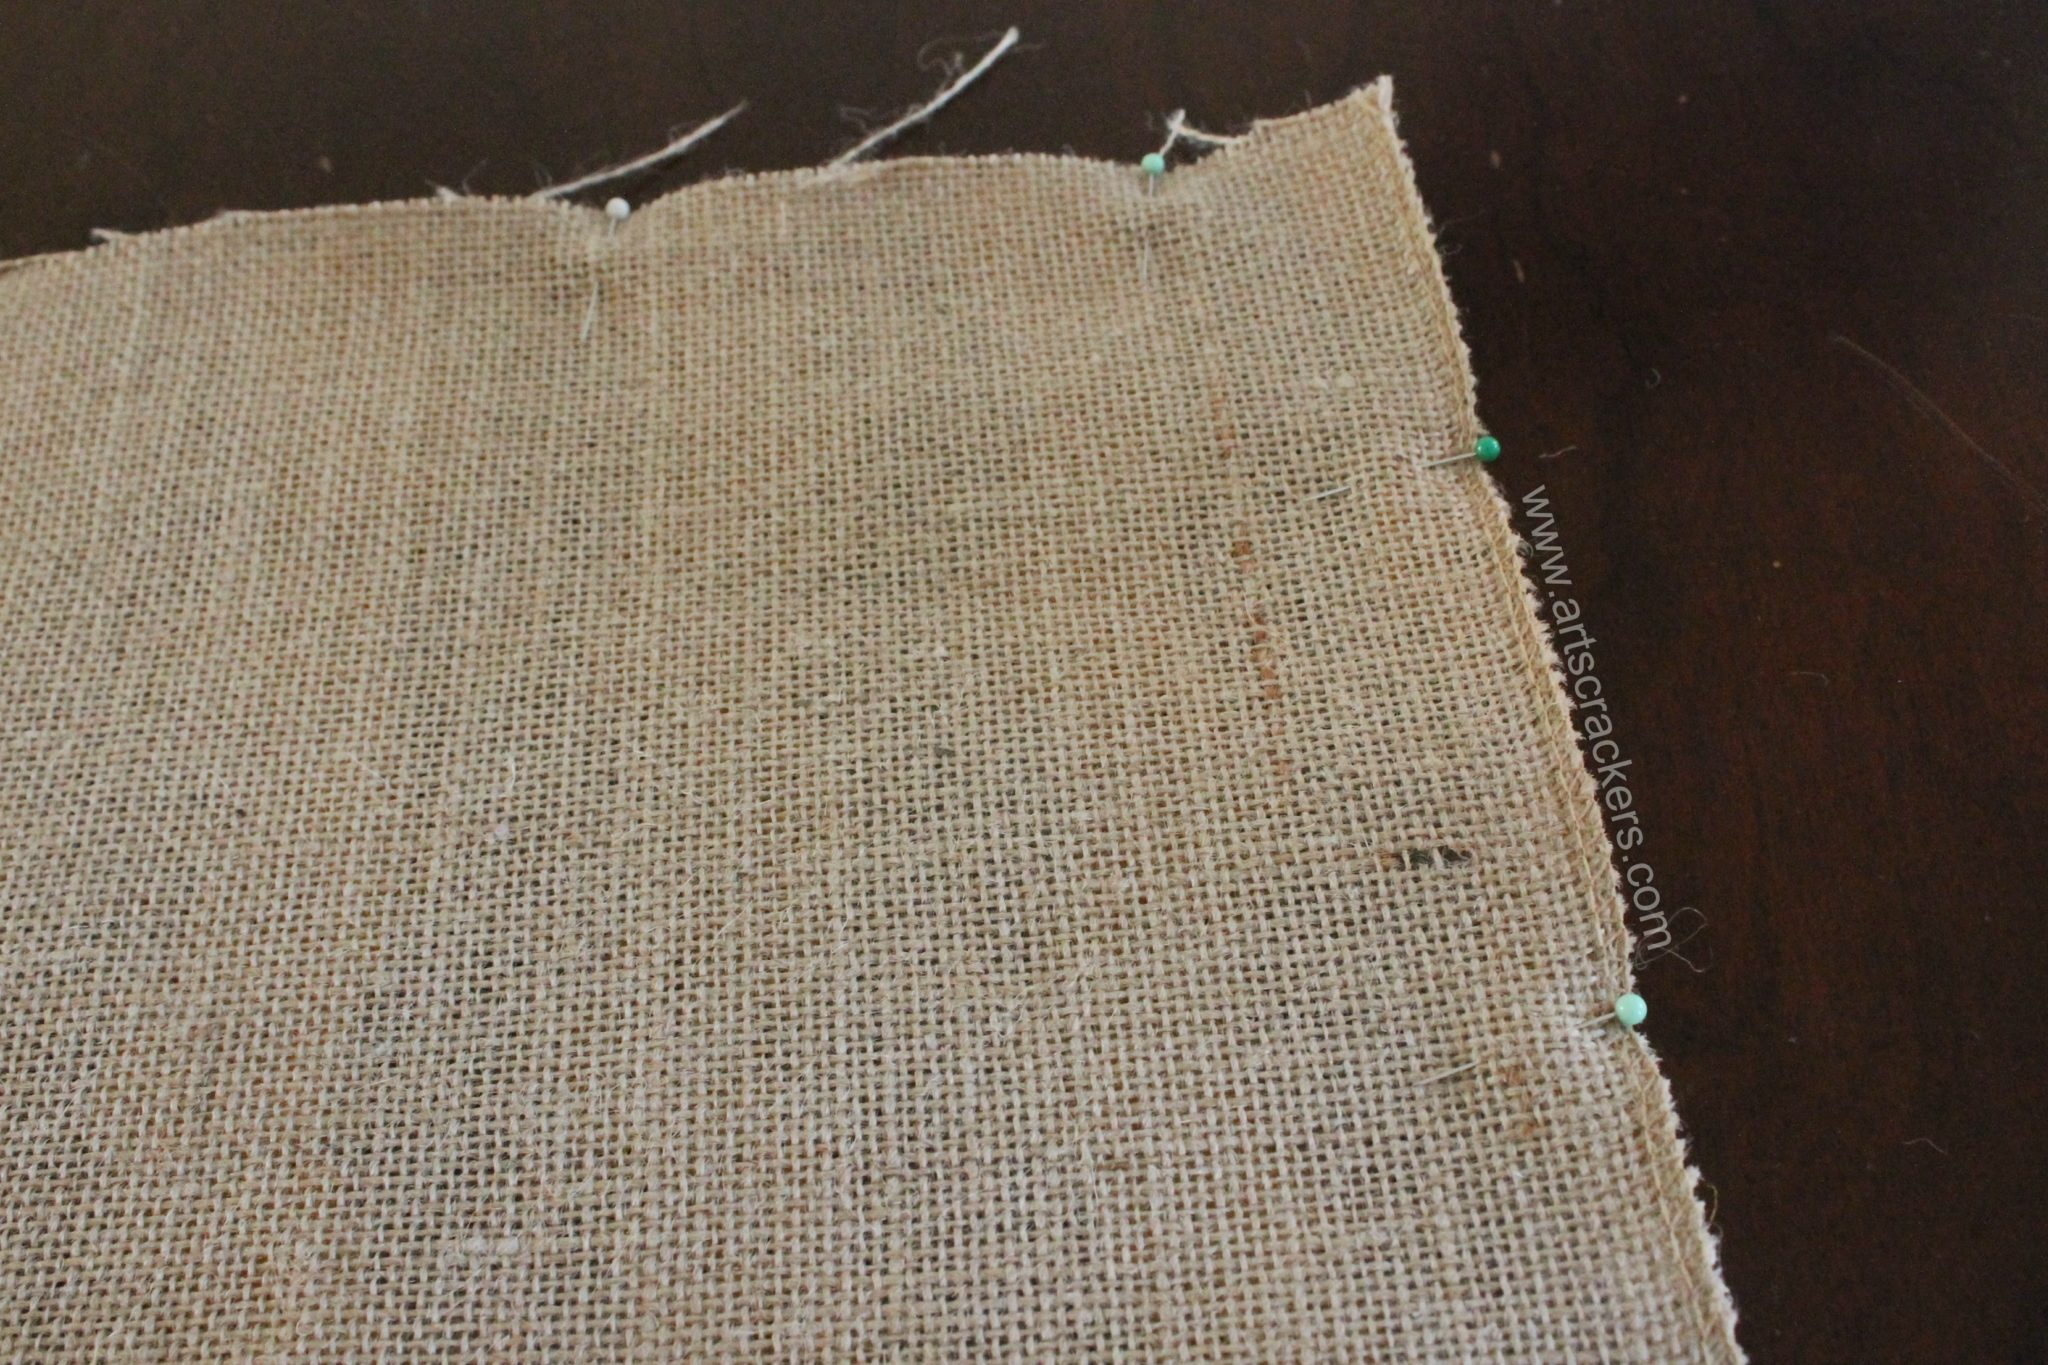 Sewing Burlap Pillows Step 2 Pinning